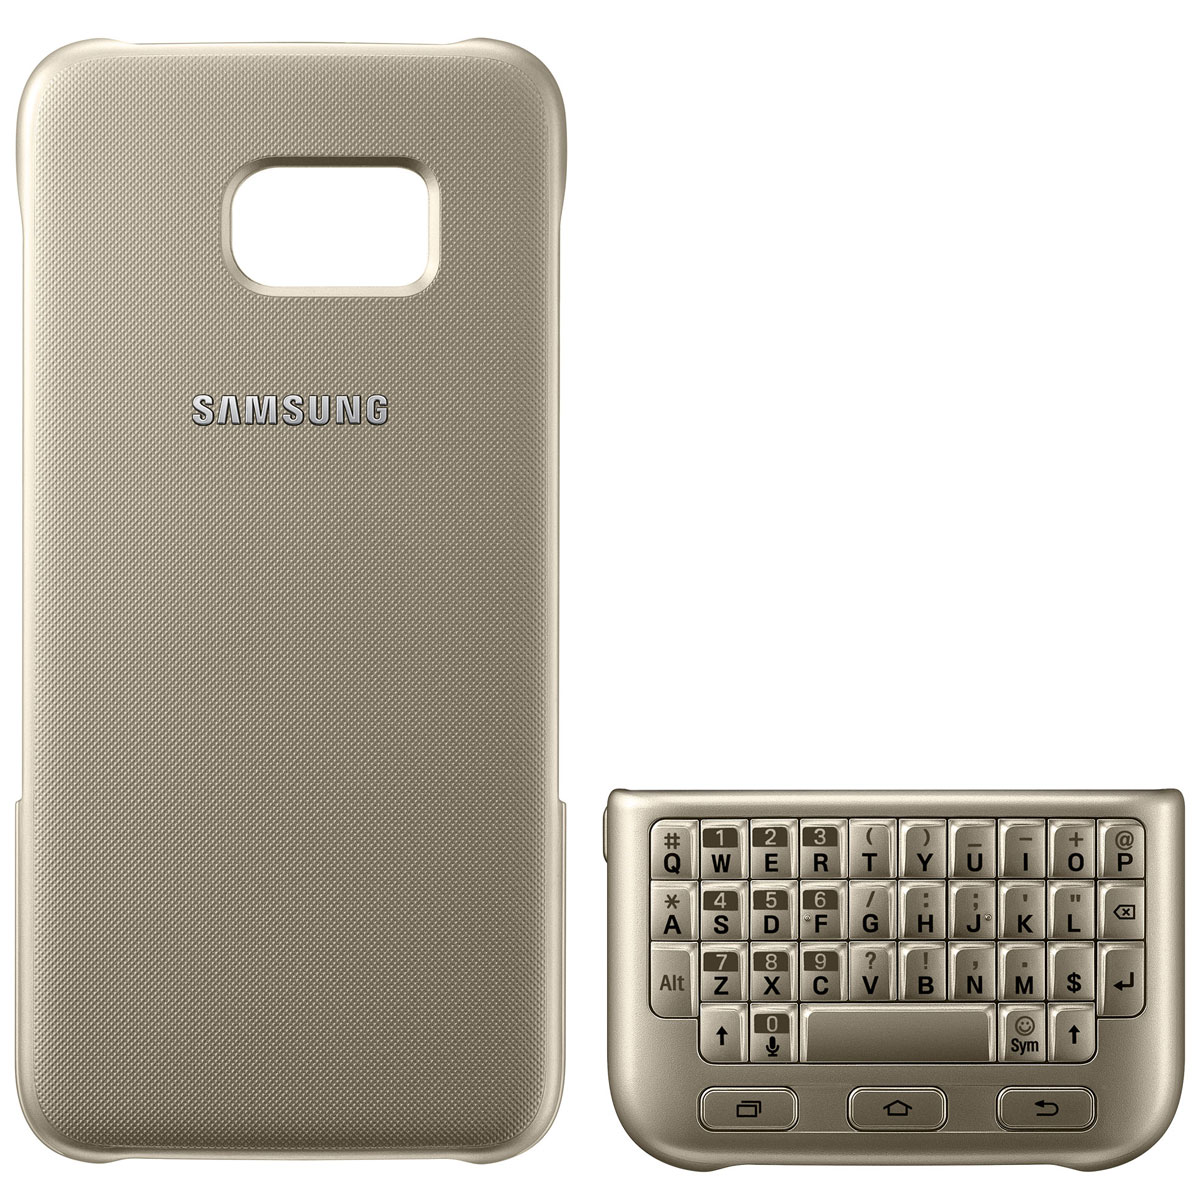 Samsung EJ-CG935 Keyboard Cover чехол-клавиатура для Galaxy S7 Edge, Gold samsung keyboard cover s7 black ej cg930ubegru